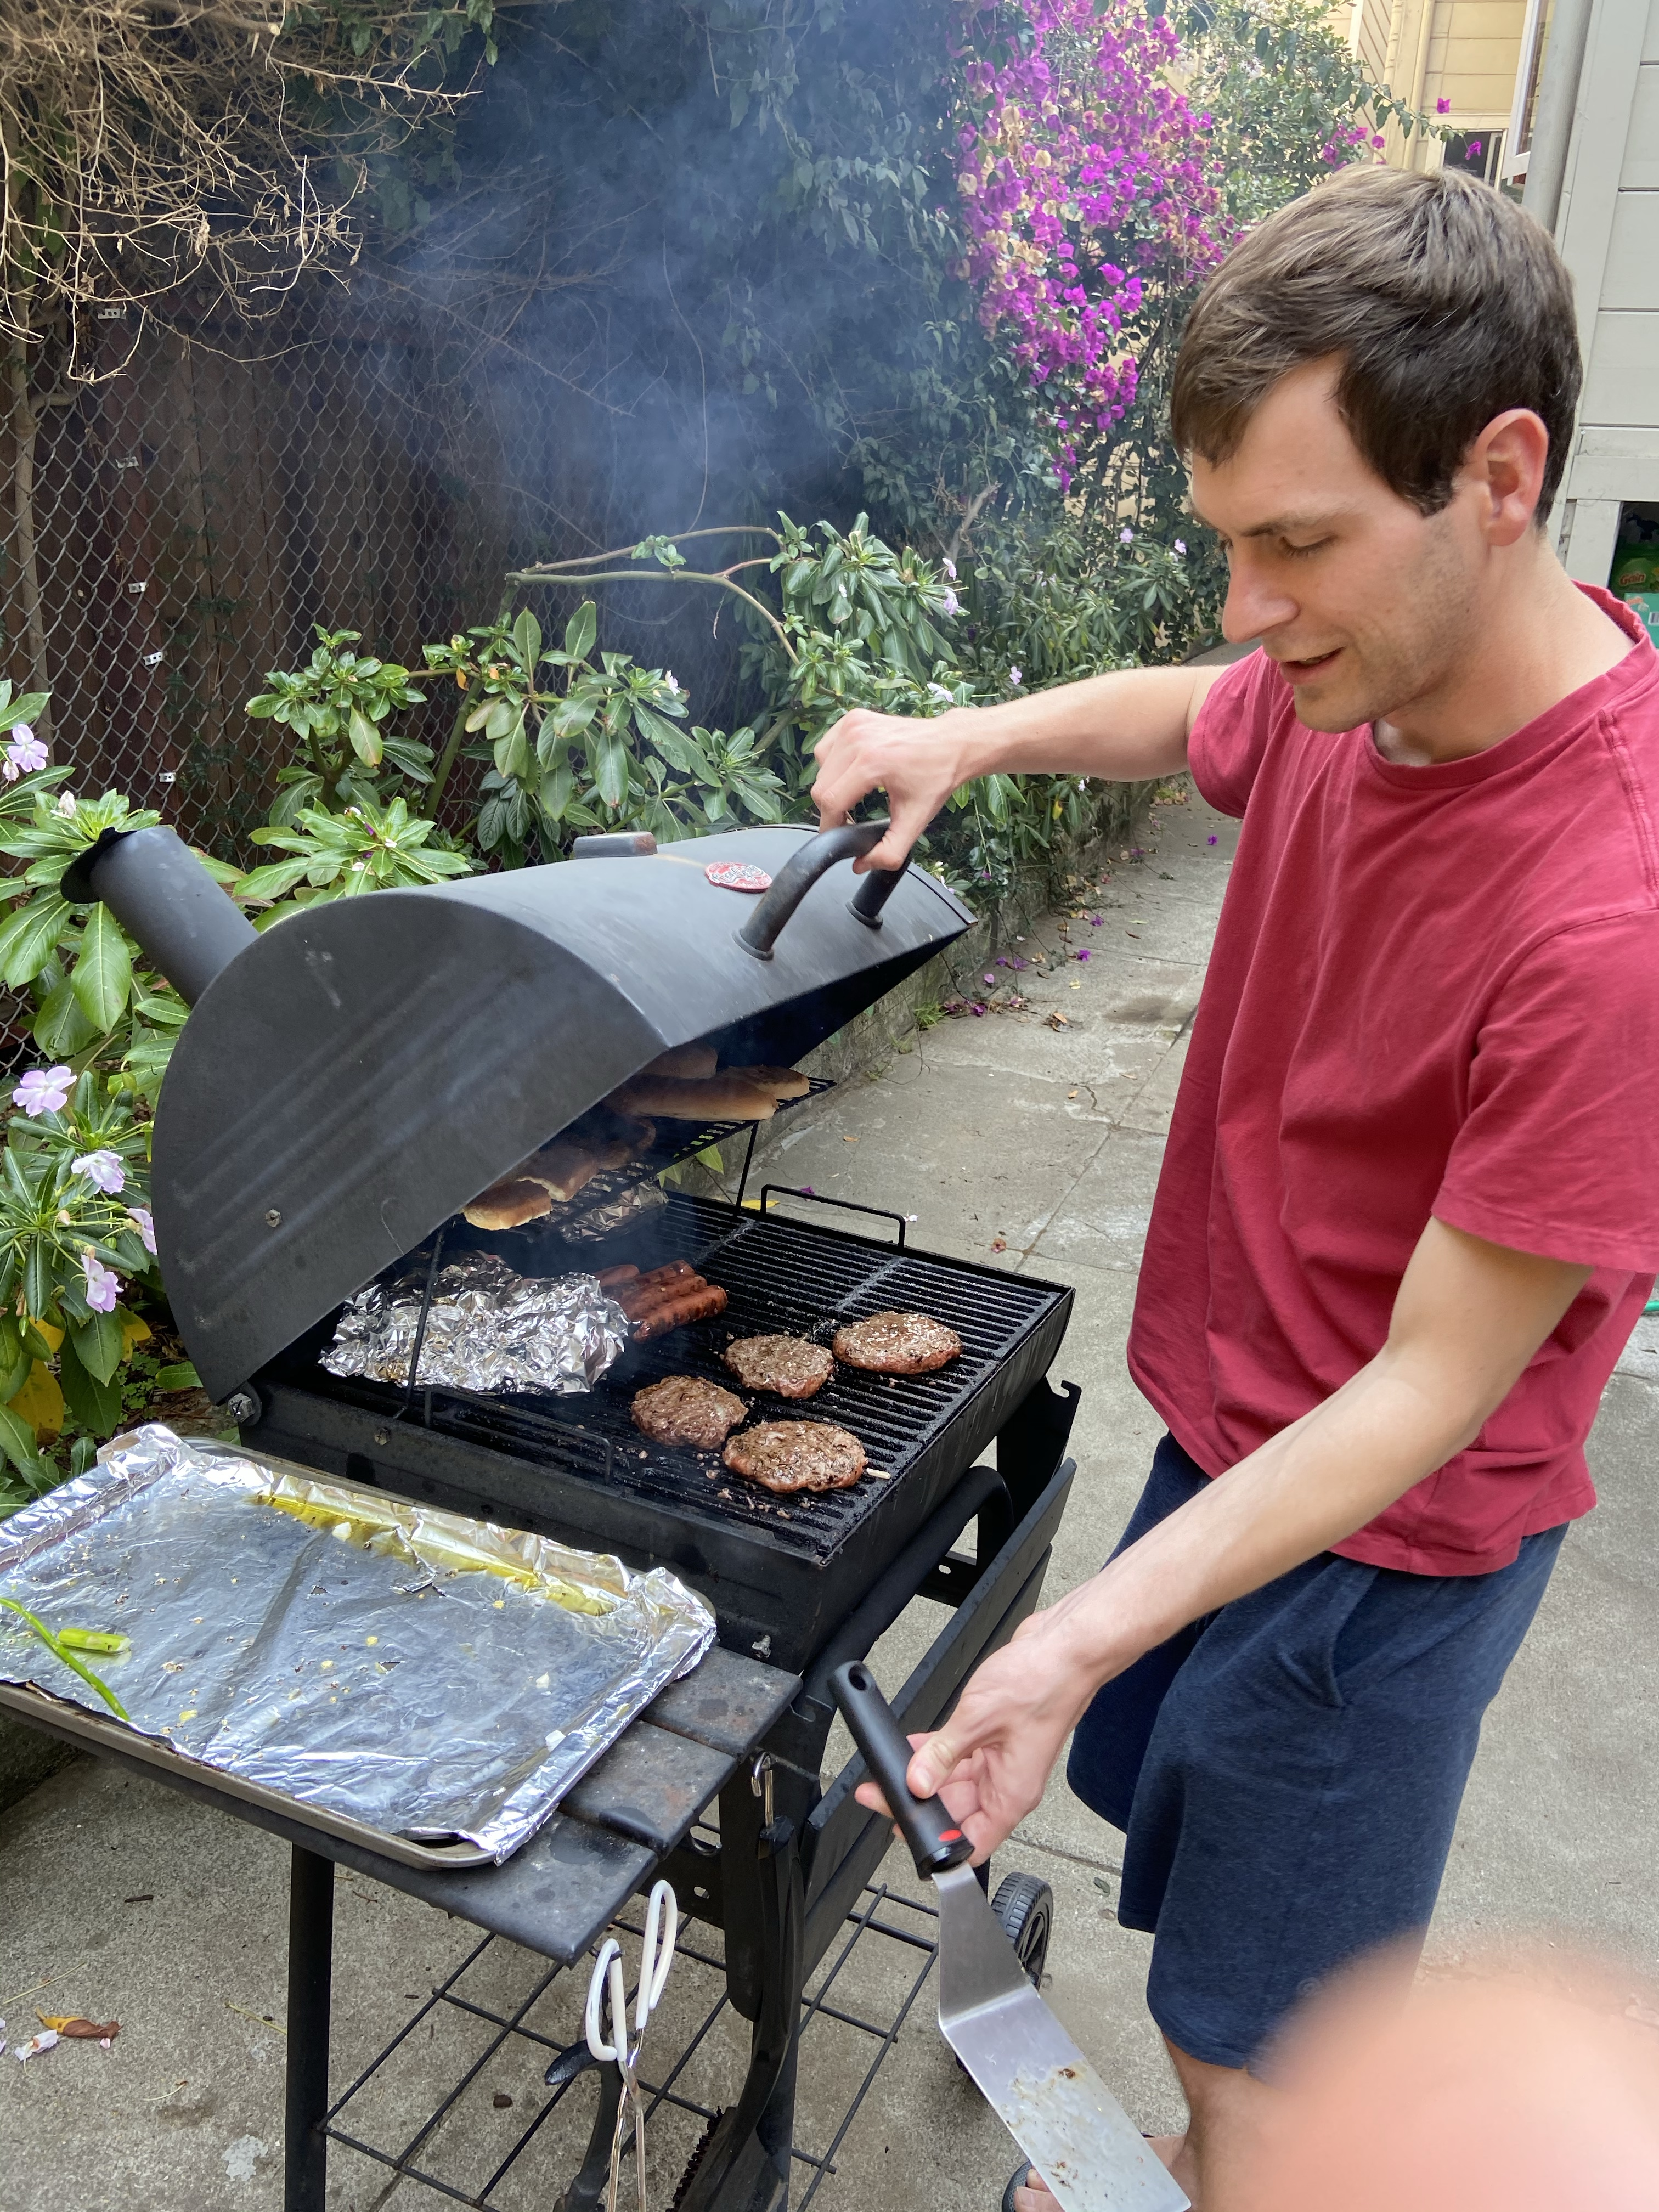 grilling at home